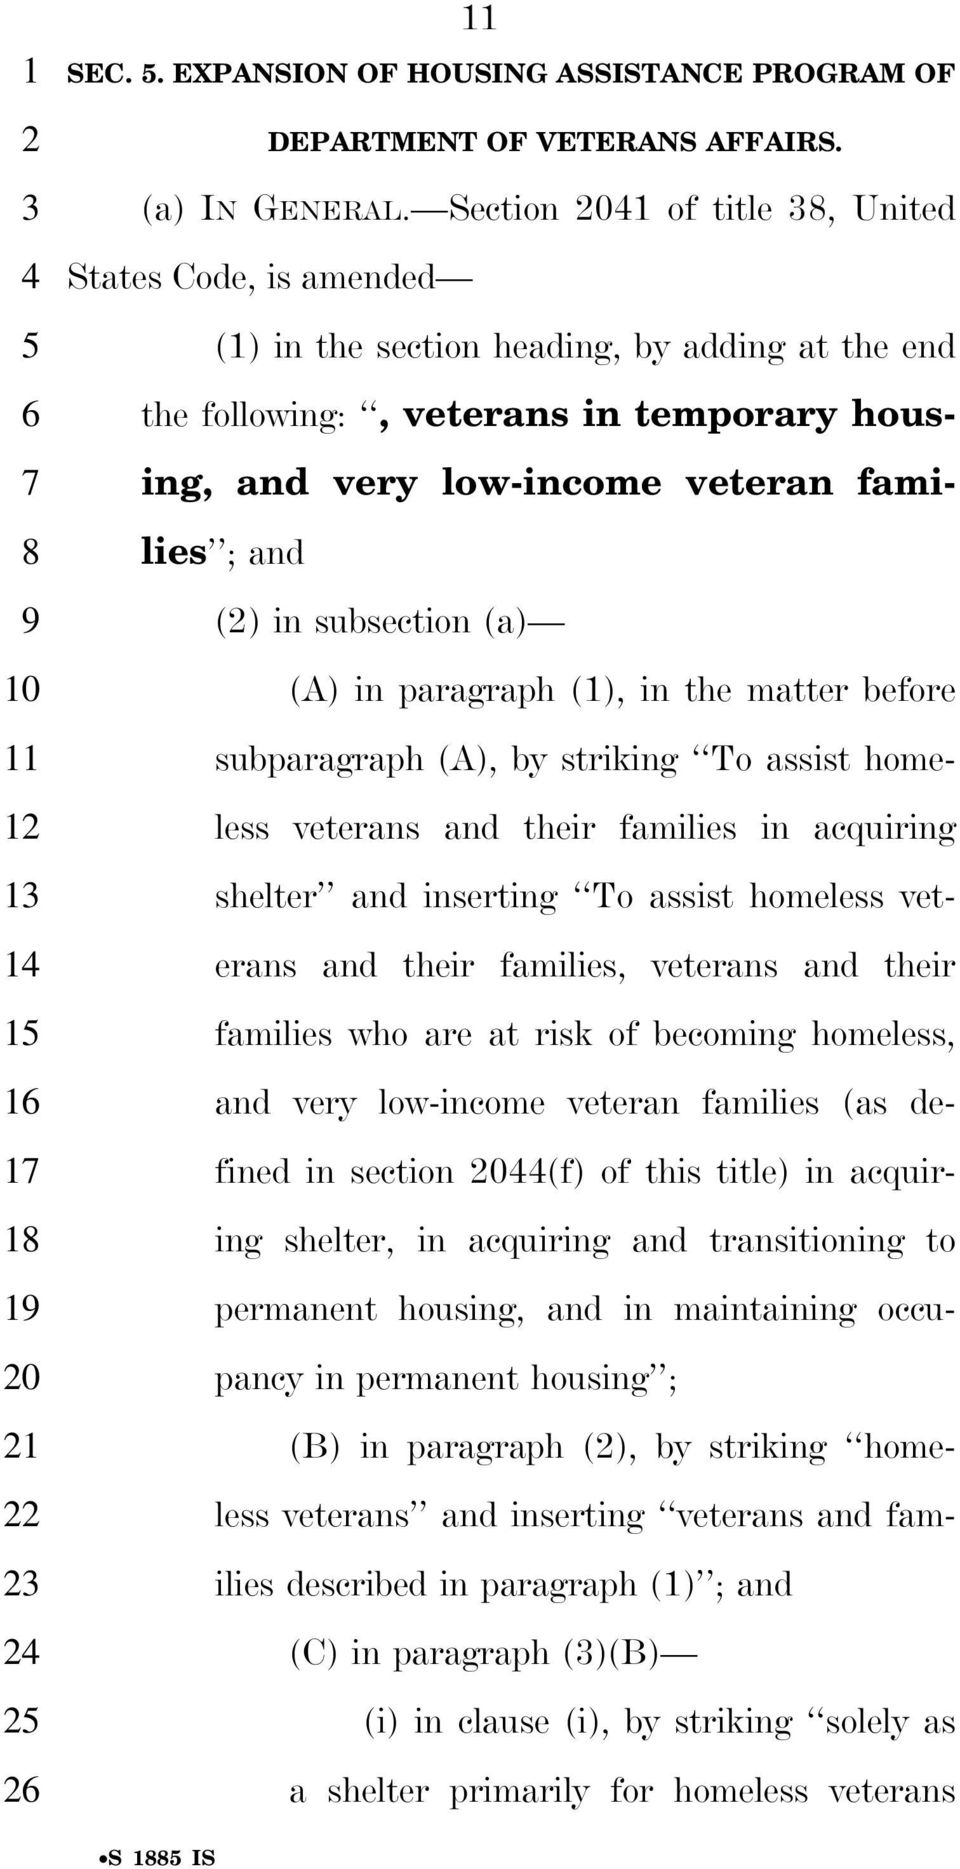 Section 01 of title, United States Code, is amended (1) in the section heading, by adding at the end the following:, veterans in temporary housing, and very low-income veteran families ; and () in